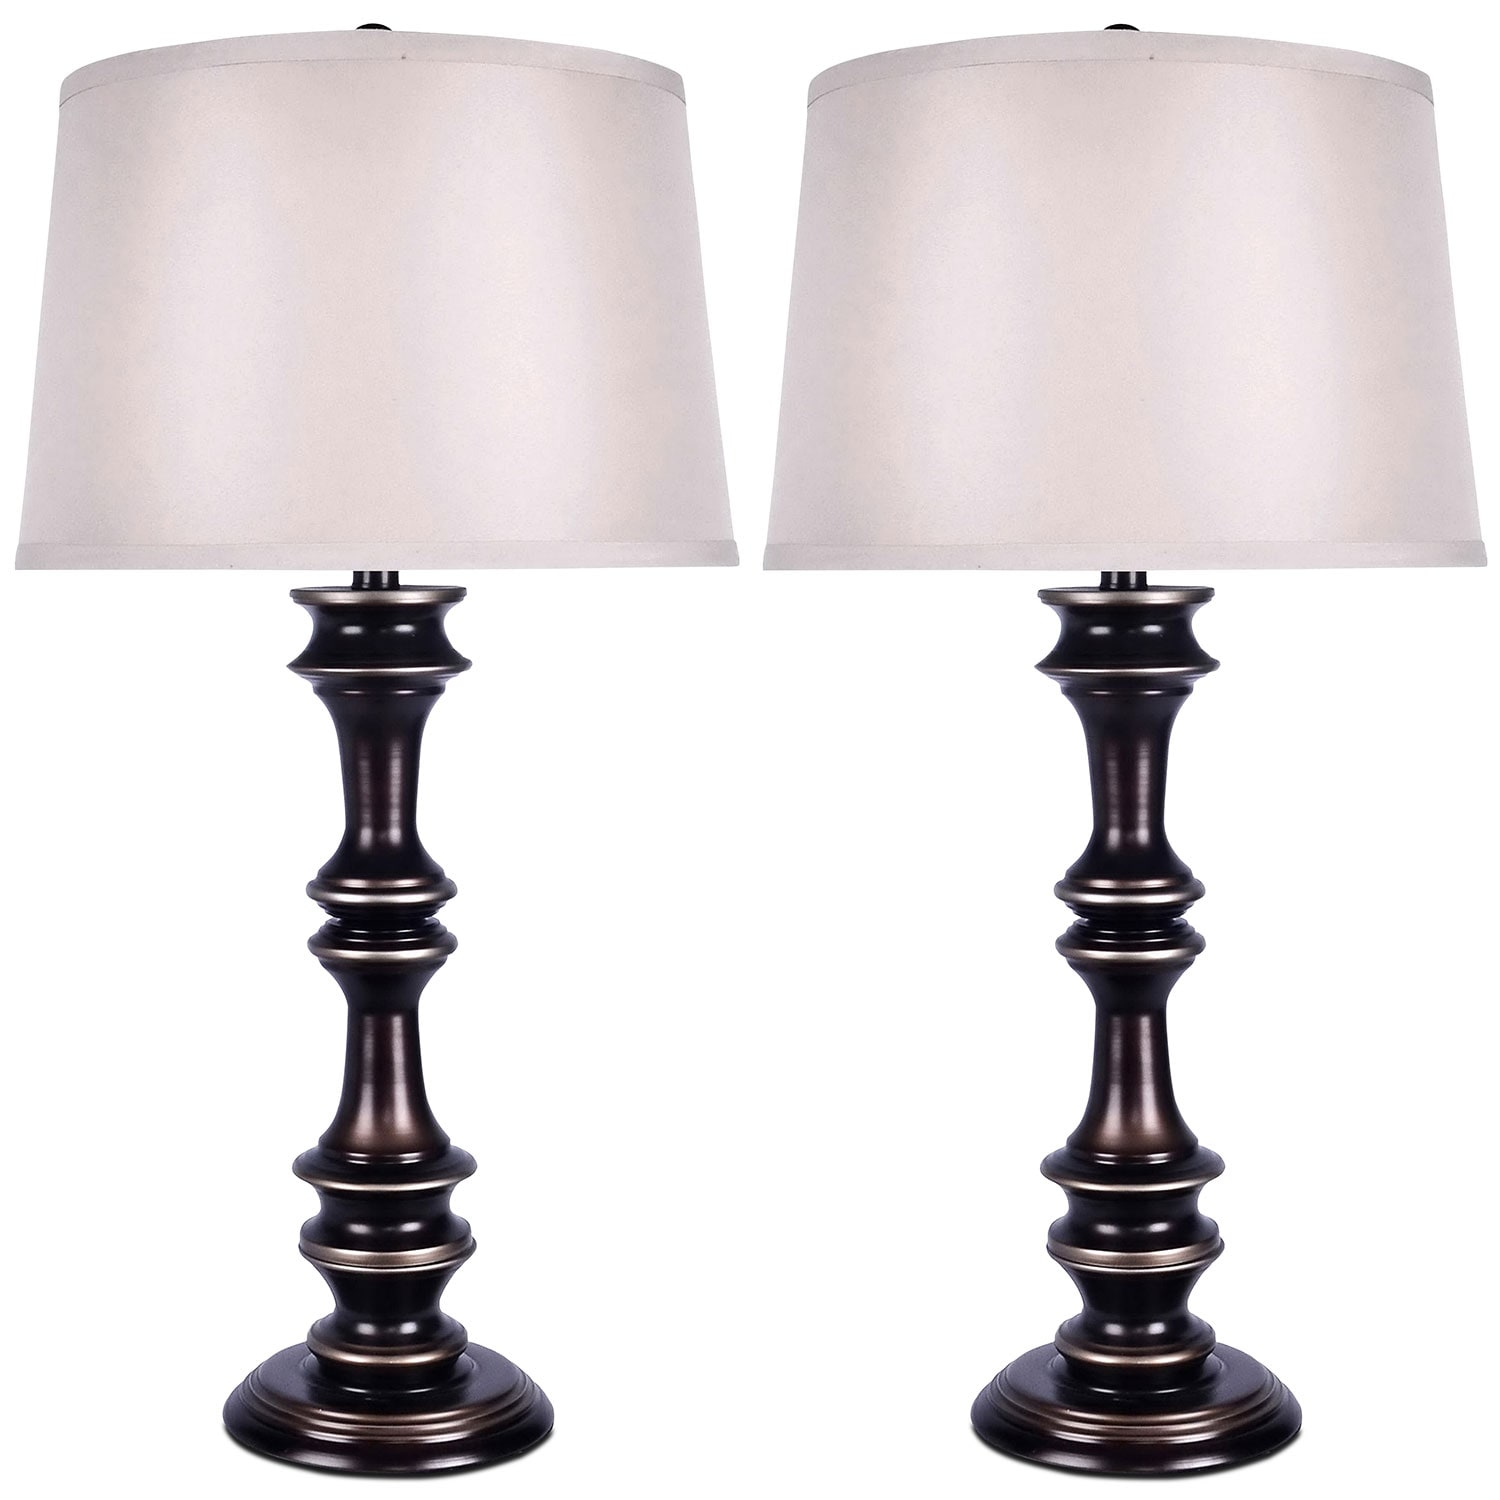 Harbour Bronze 2-Piece Table Lamp Set